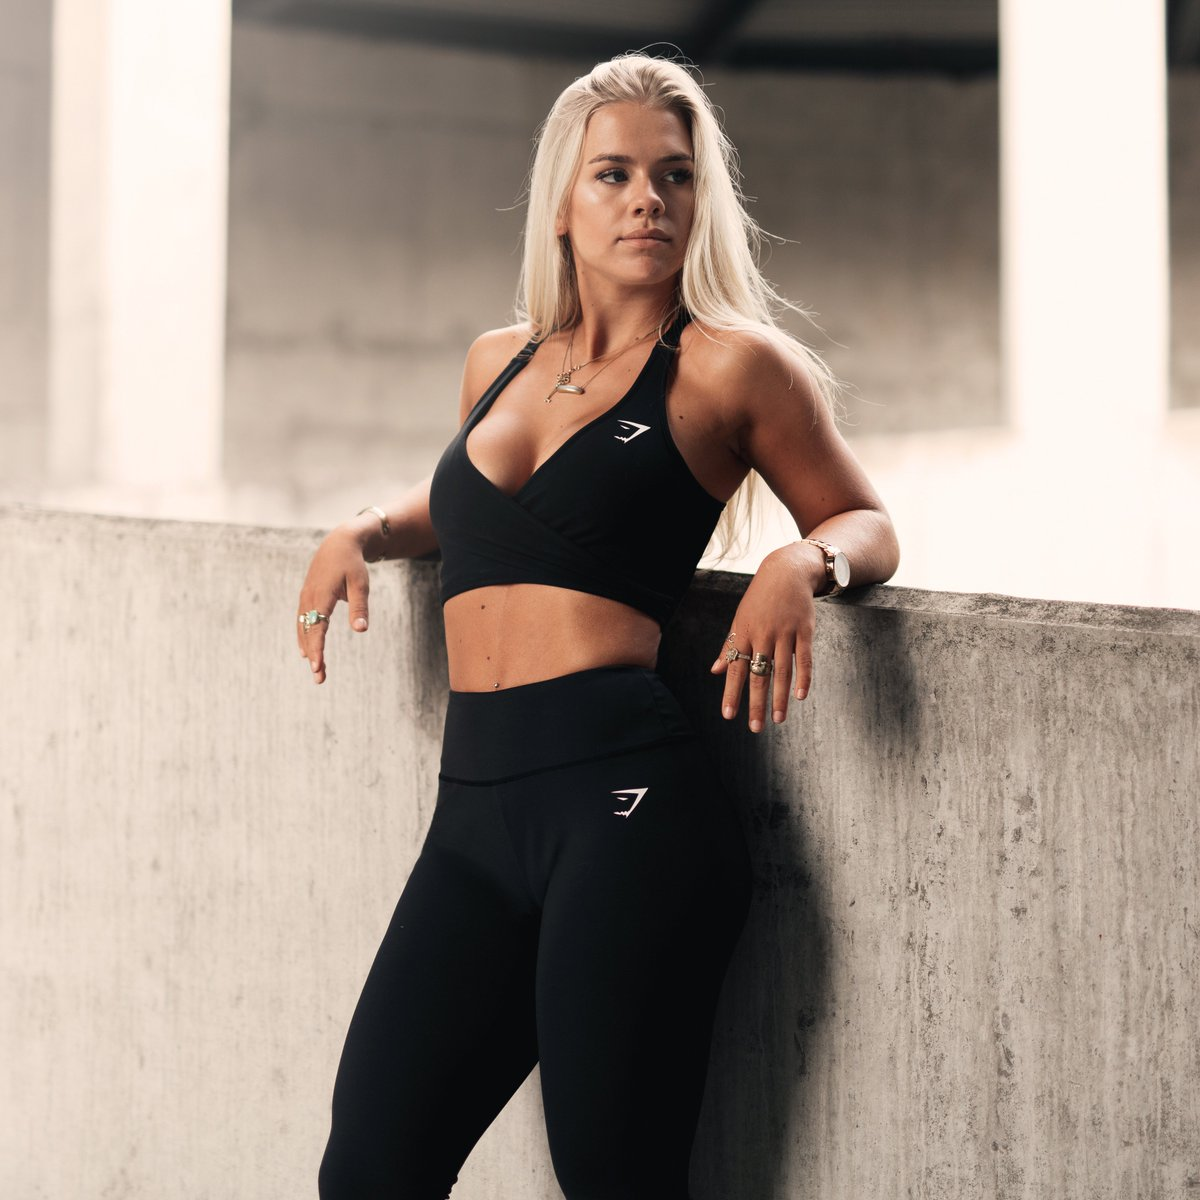 5eb4d44594b64 Make room for the Elite. The Elite sports bra guarantees a dry and comfortable  workout. Perfect when paired with the Dreamy leggings